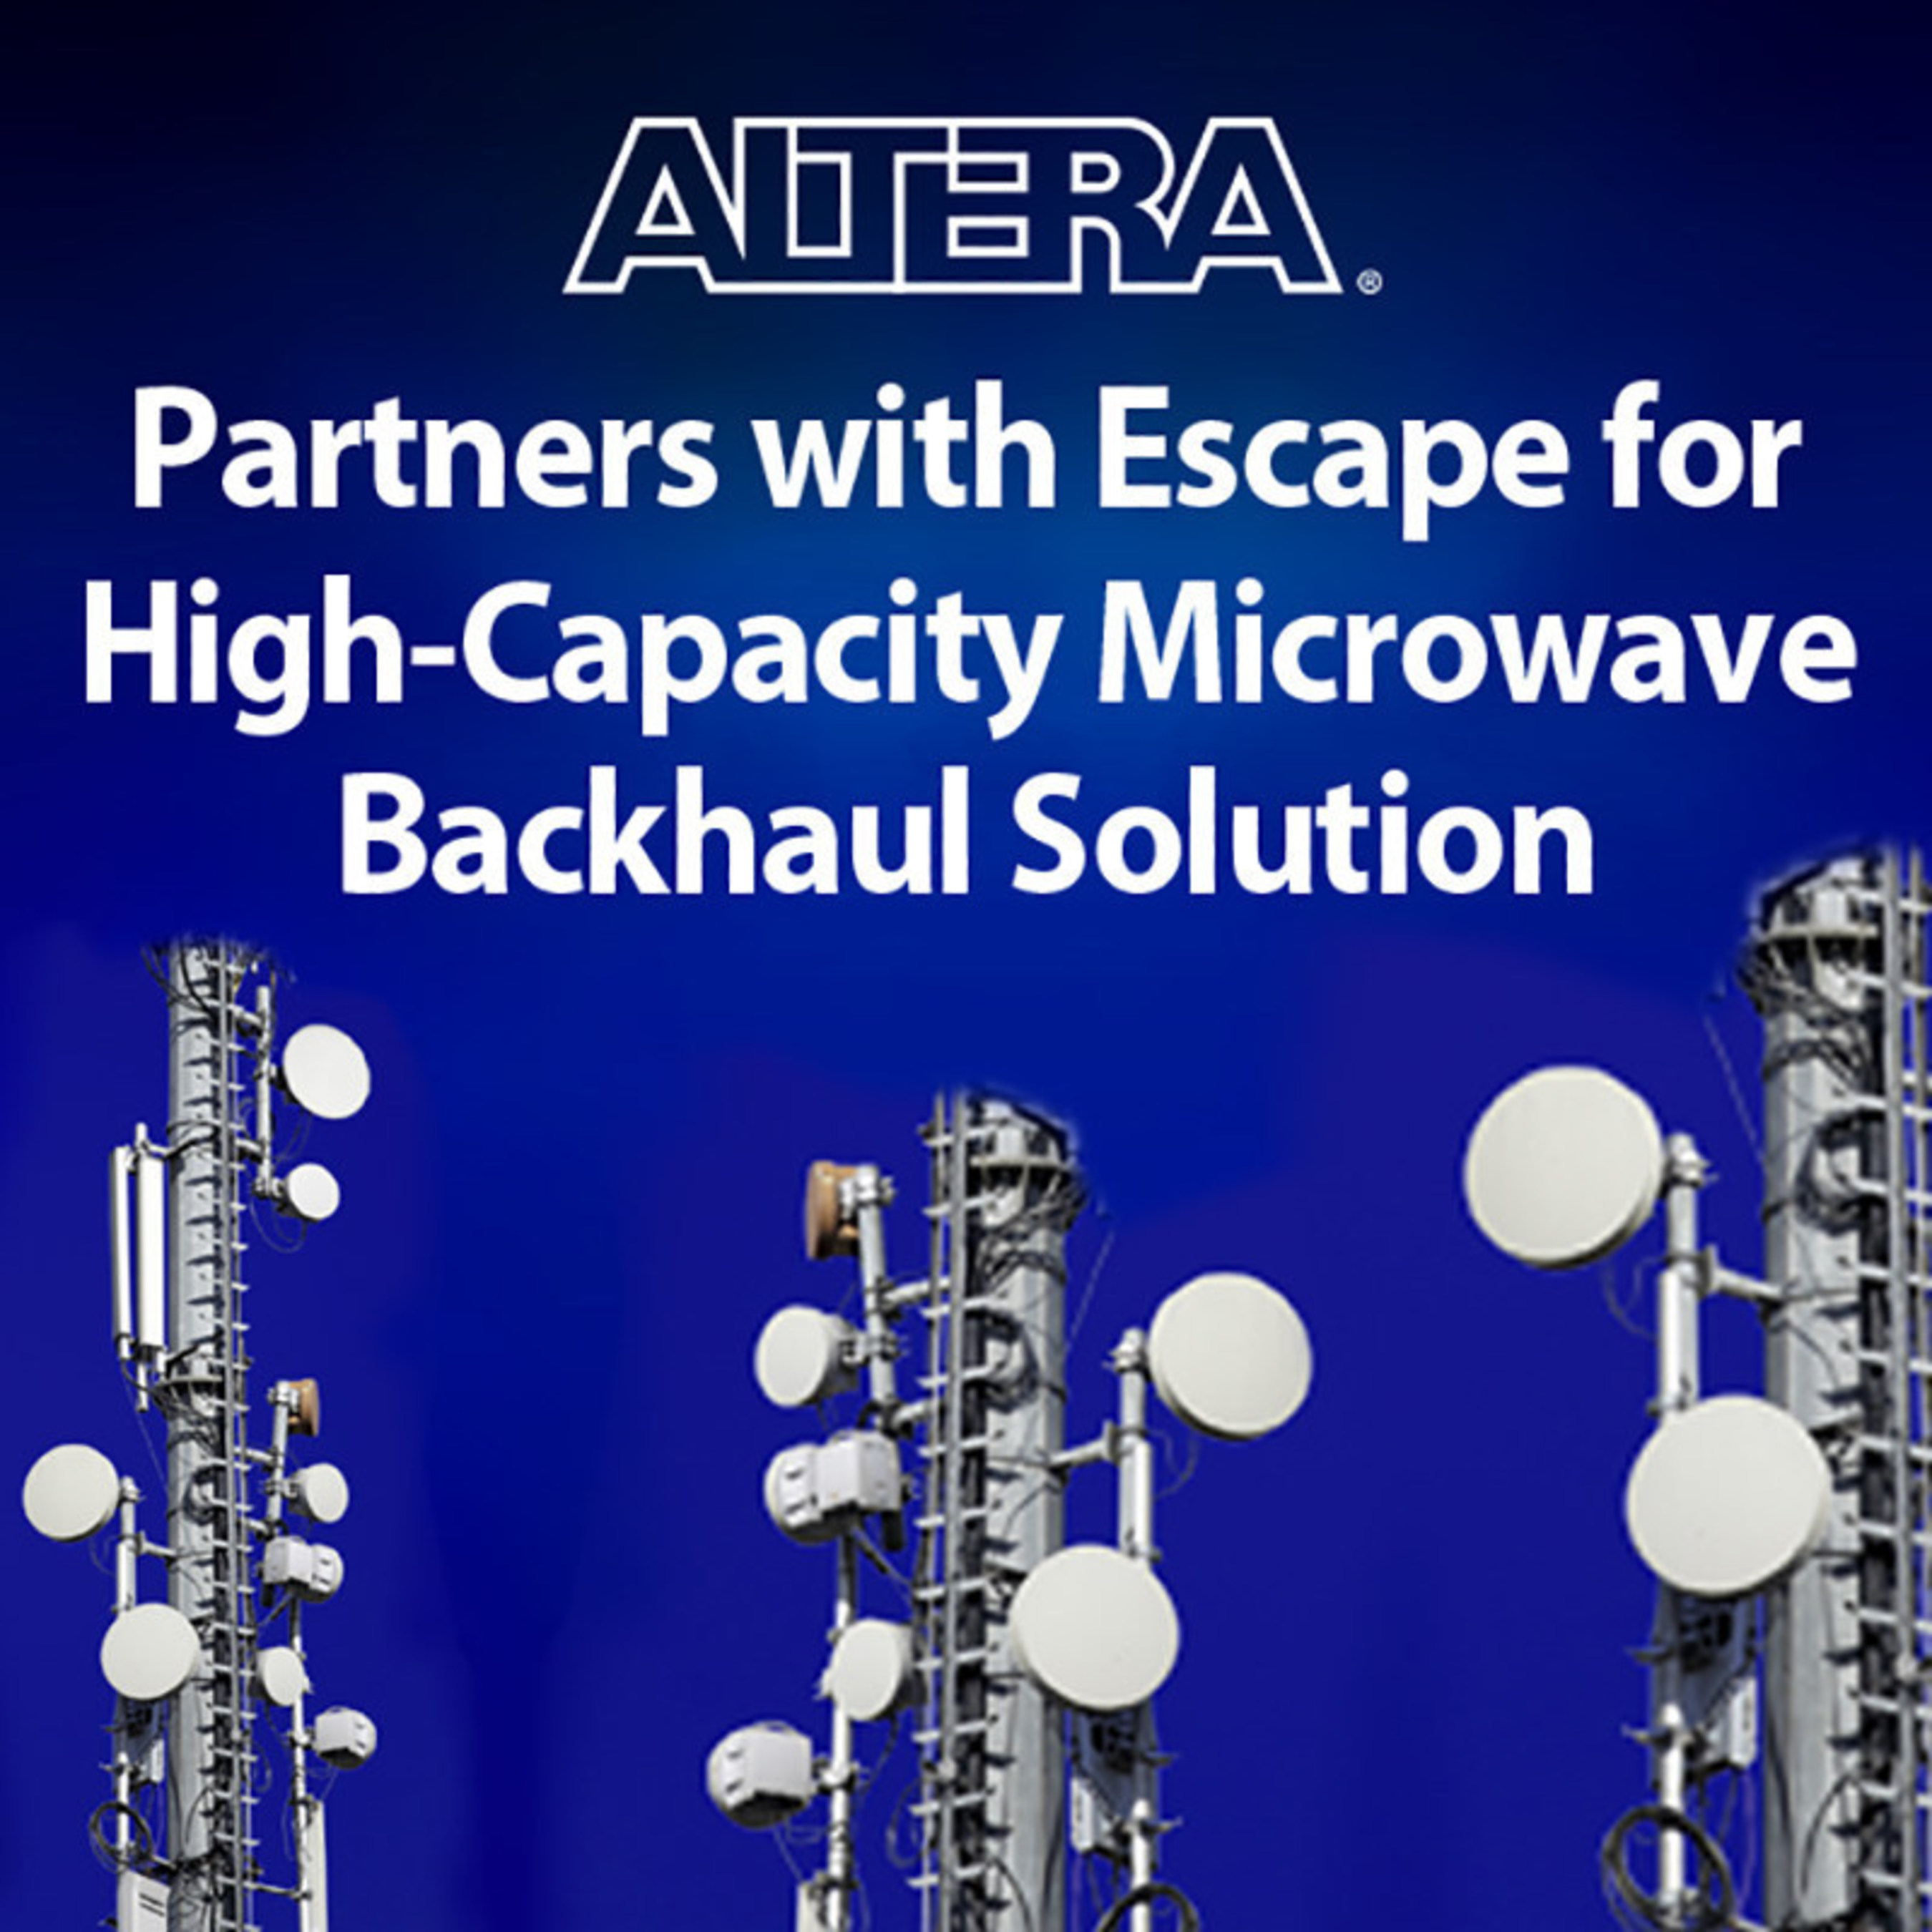 Altera and Escape Communications Announce High-capacity Turn-key Modem Solution for E- and V-band Microwave Radios